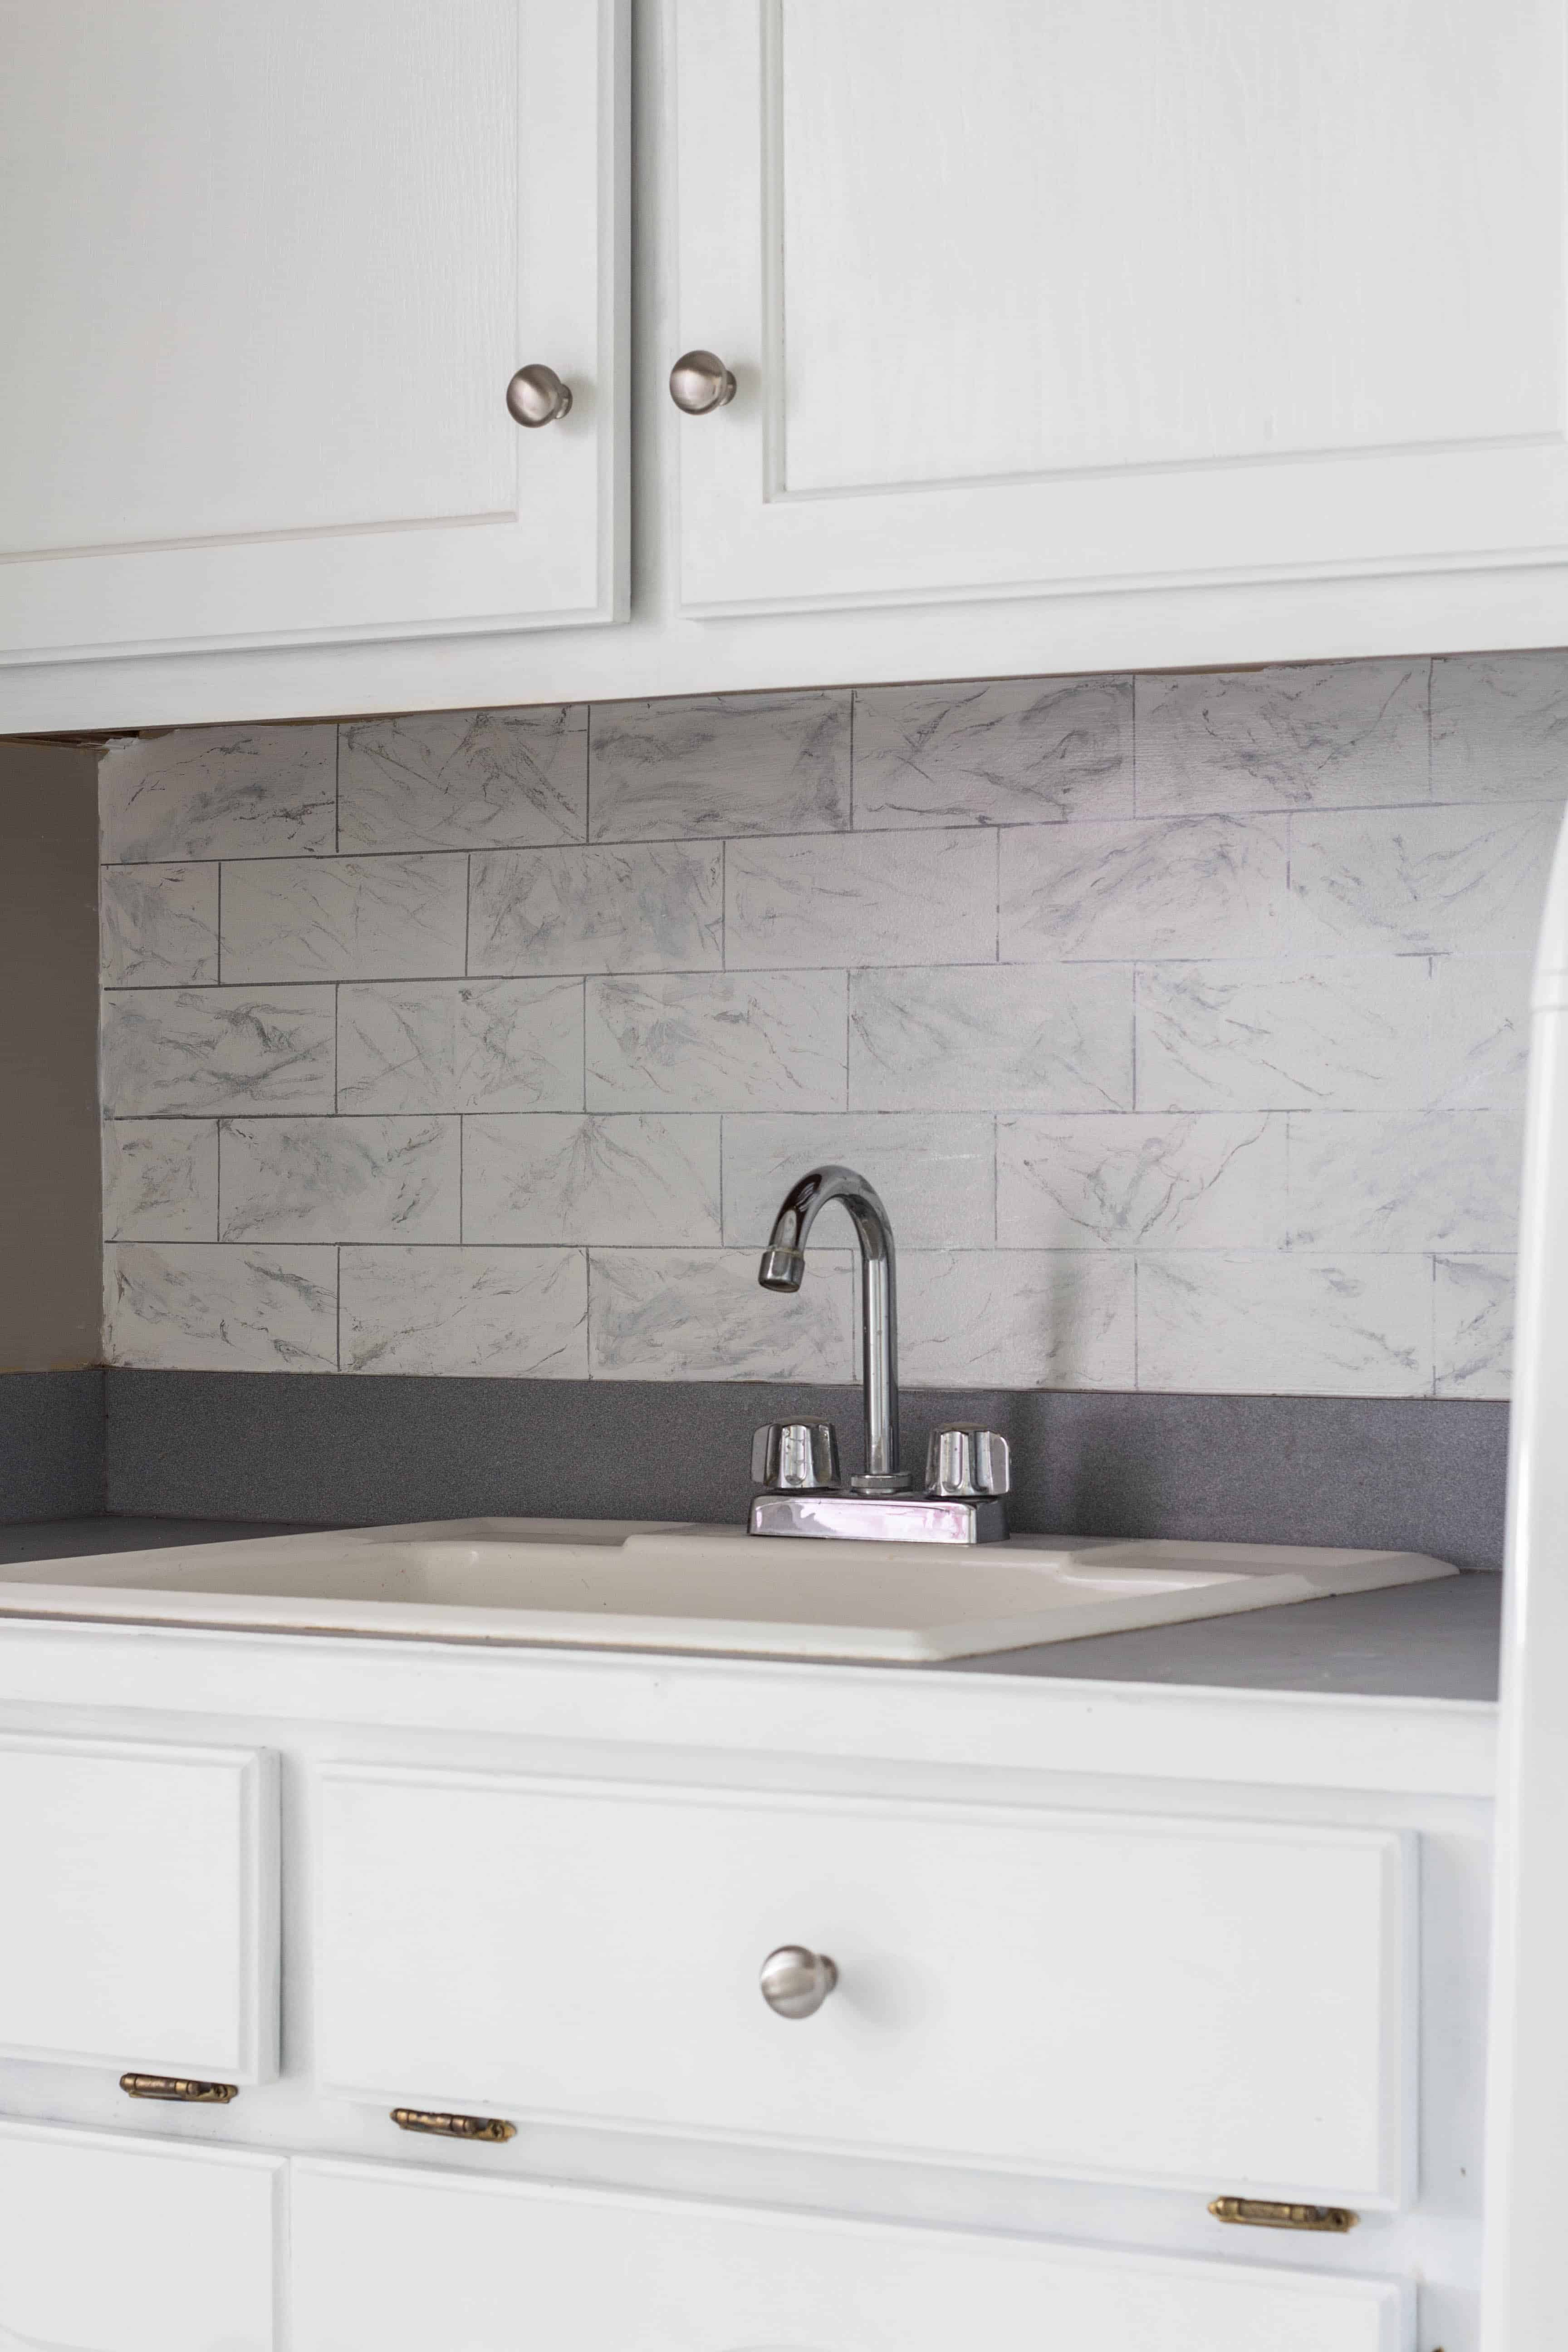 Faux marble backsplash in laundry room makeover for the $100 Room Challenge.